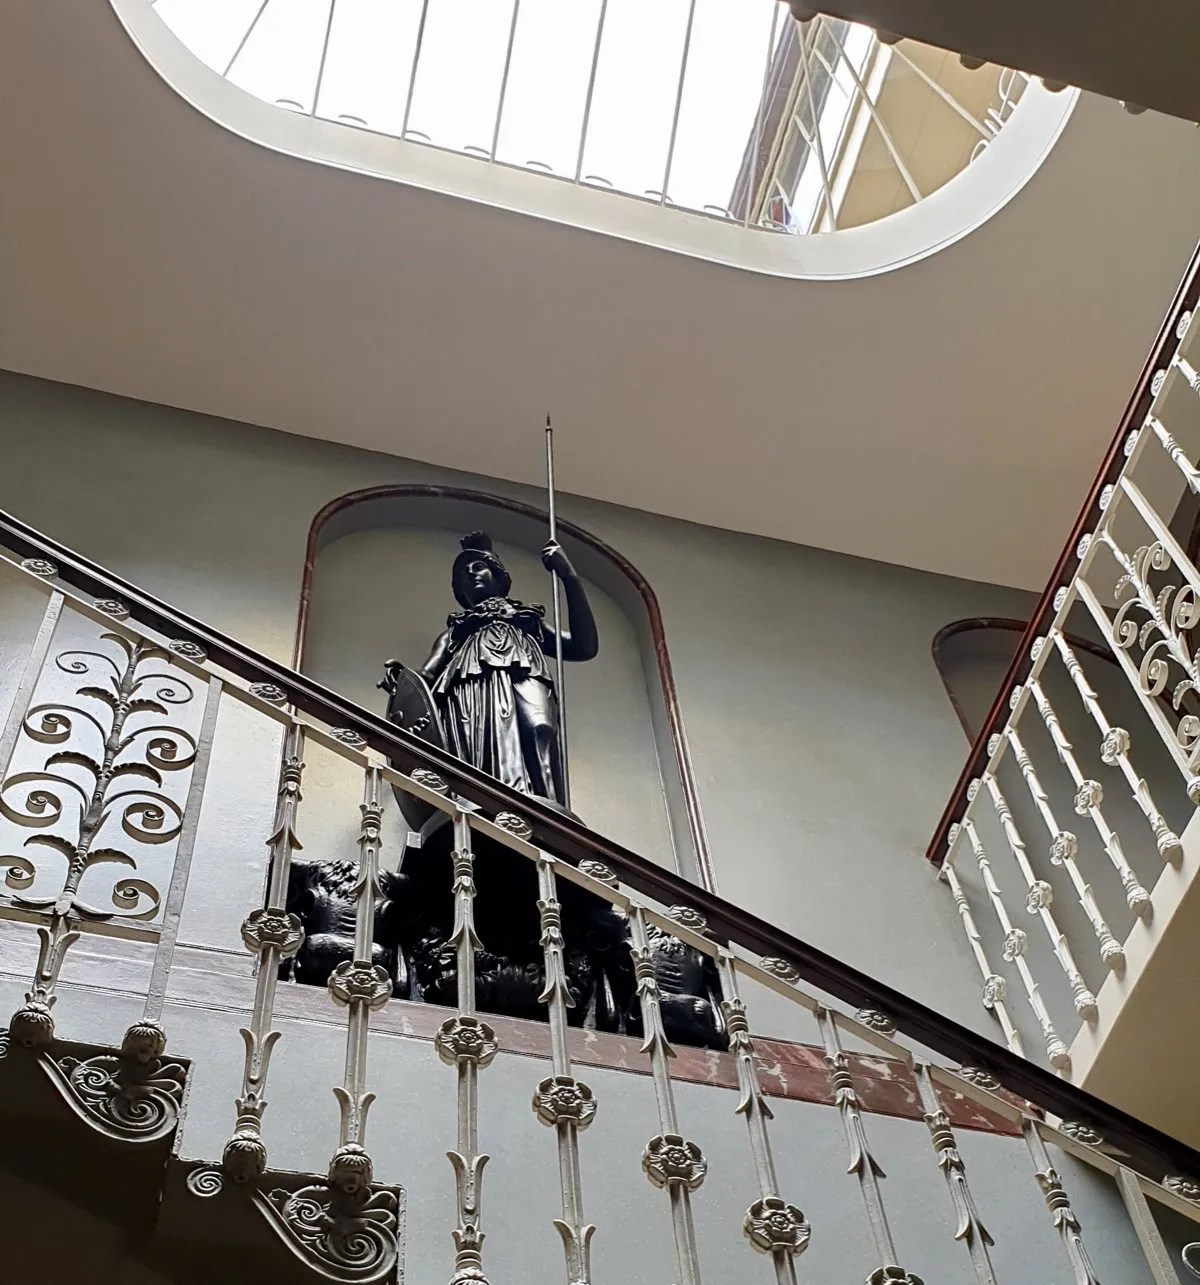 Pitzhanger staircase with light well and statue